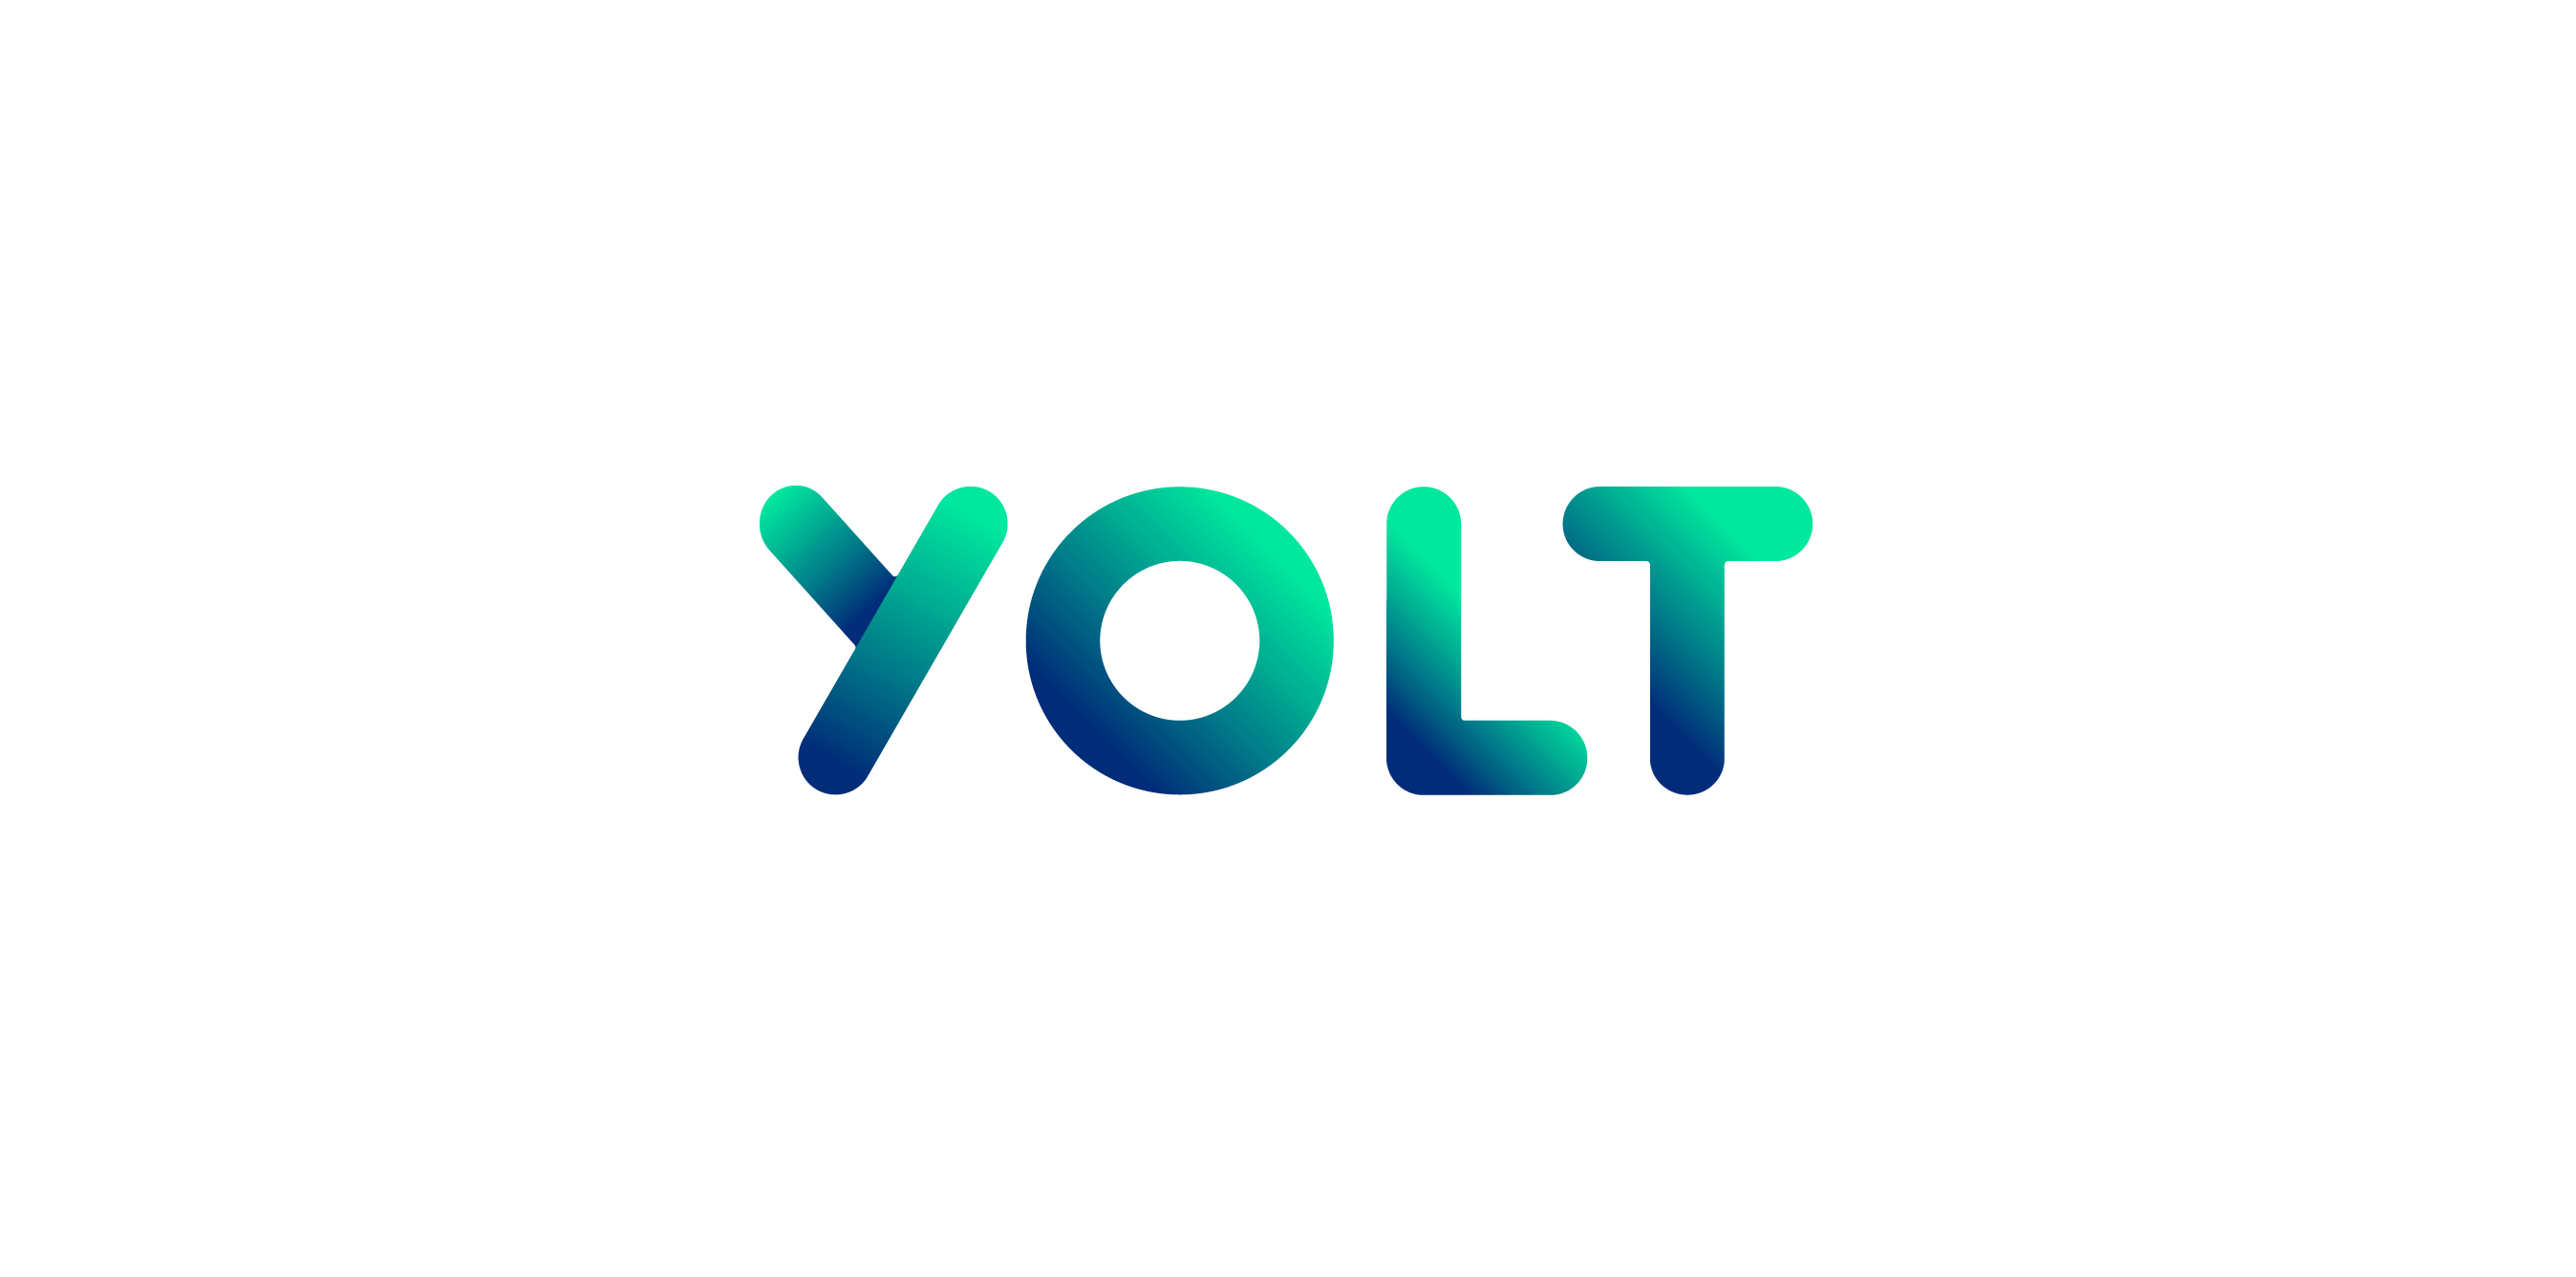 Consumer Spending Falls by 16% Since the Latest Lifting of Restrictions, According to Yolt's User Data